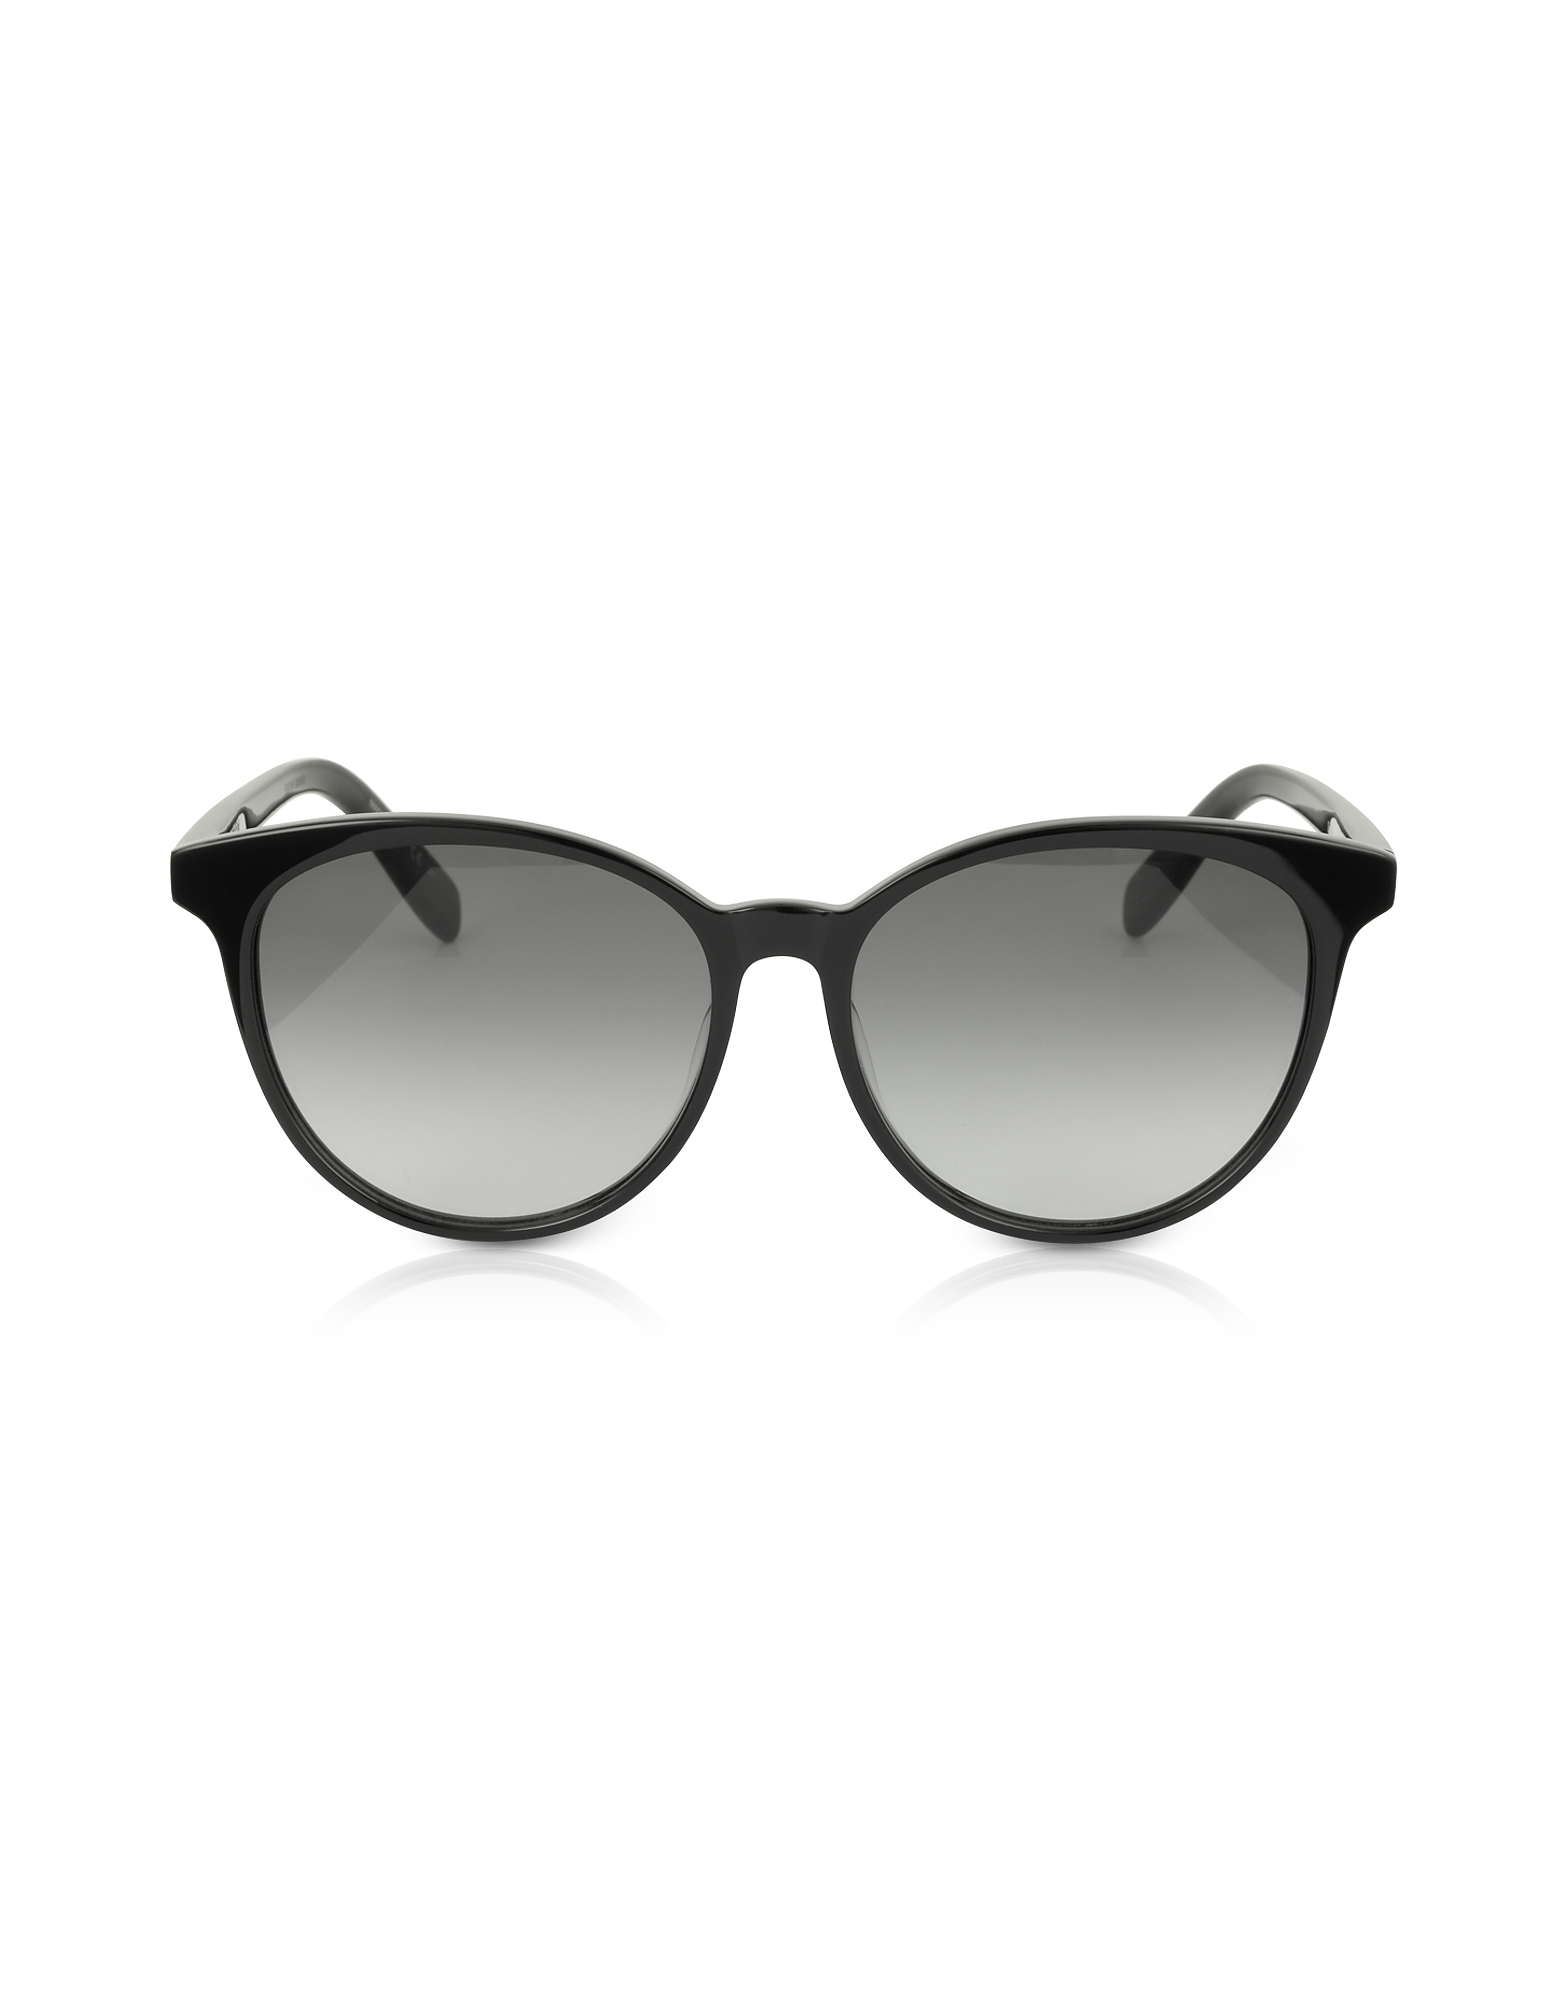 Saint Laurent Sunglasses, SL204 K Acetate Oval Frame Women Sunglasses